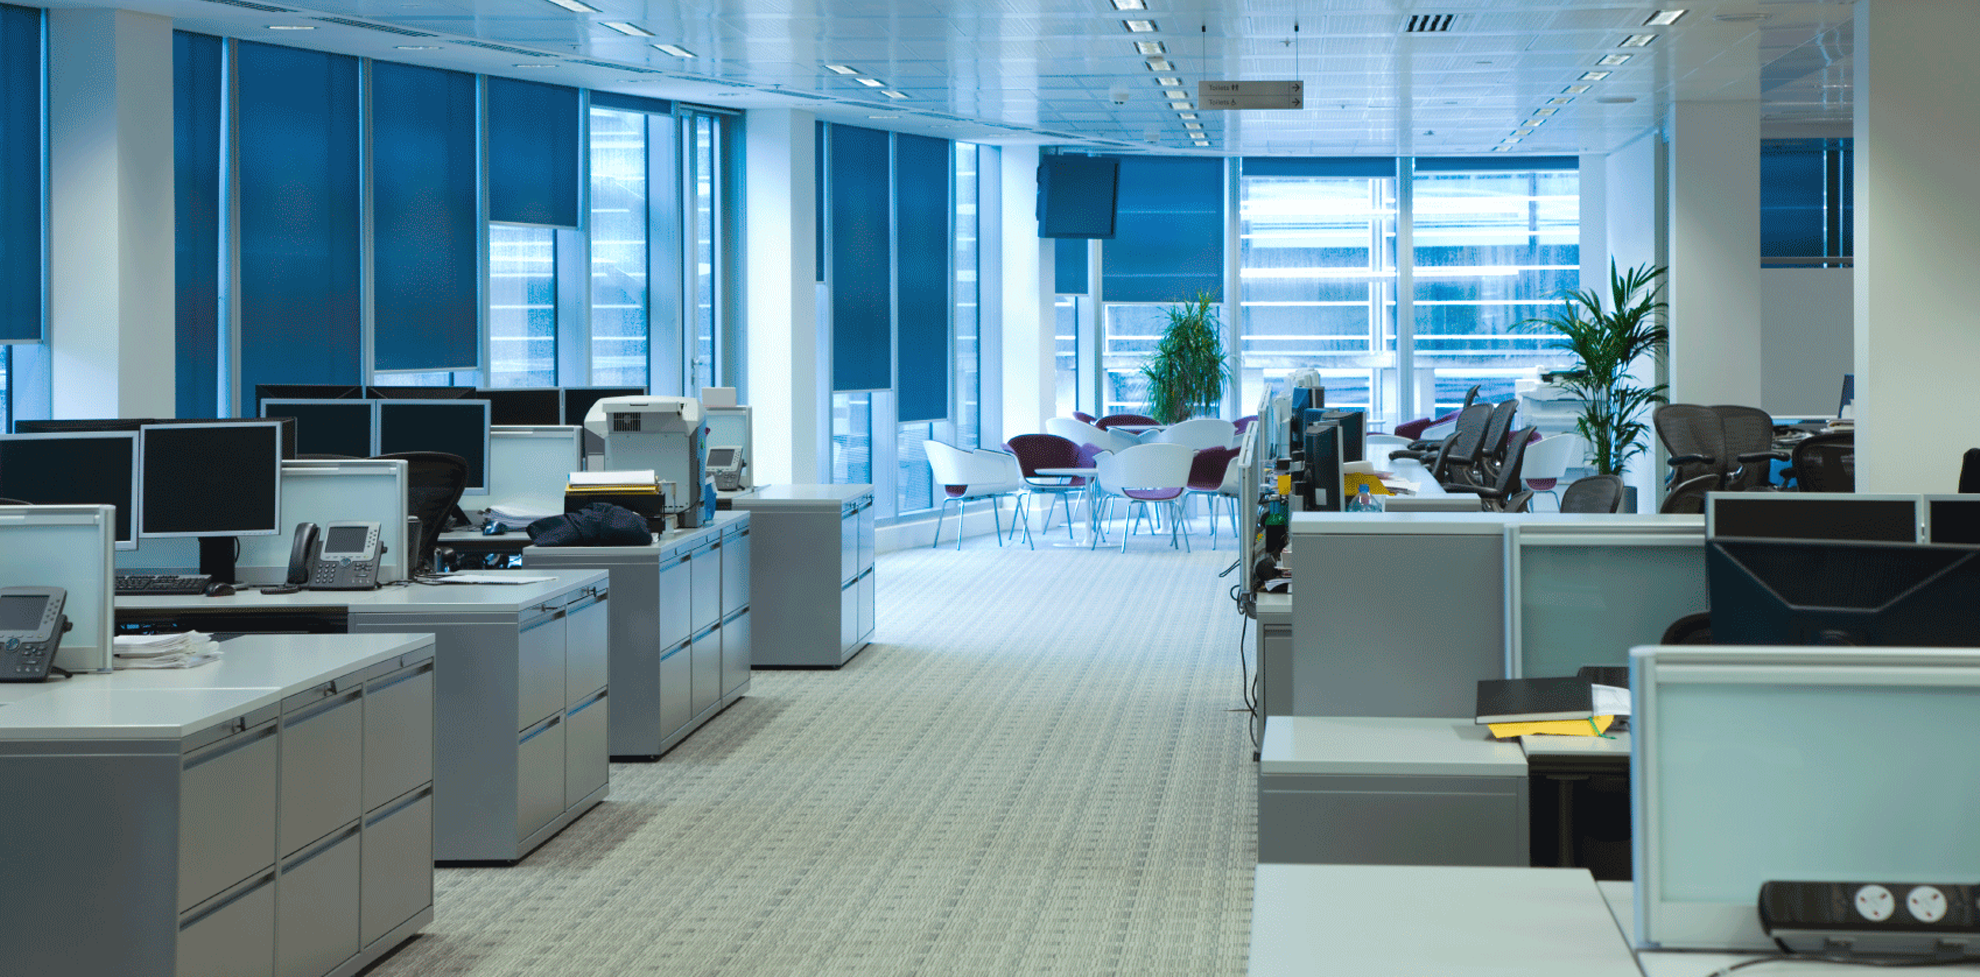 General Office Cleaning Service